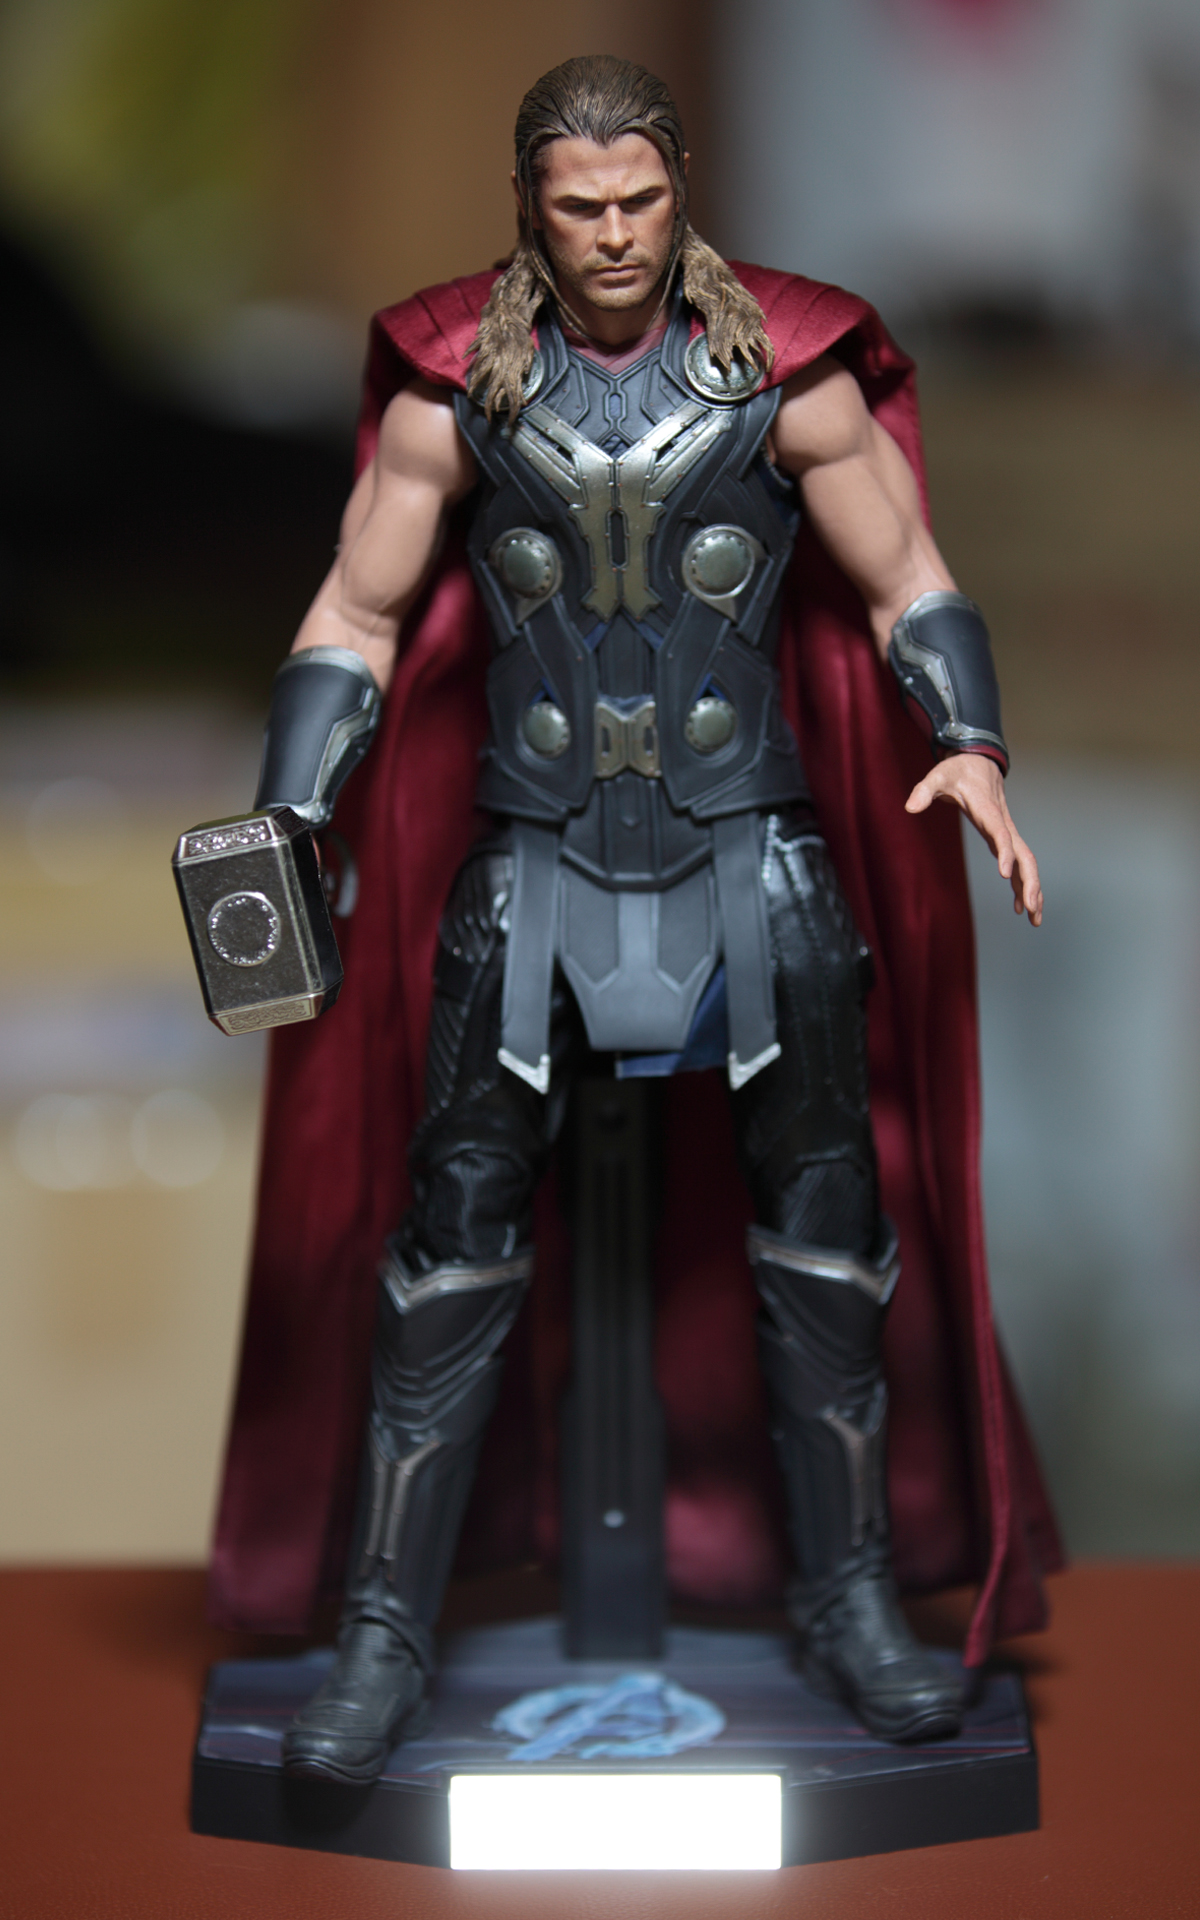 hot-toys-avengers-age-of-ultron-thor-picture-16